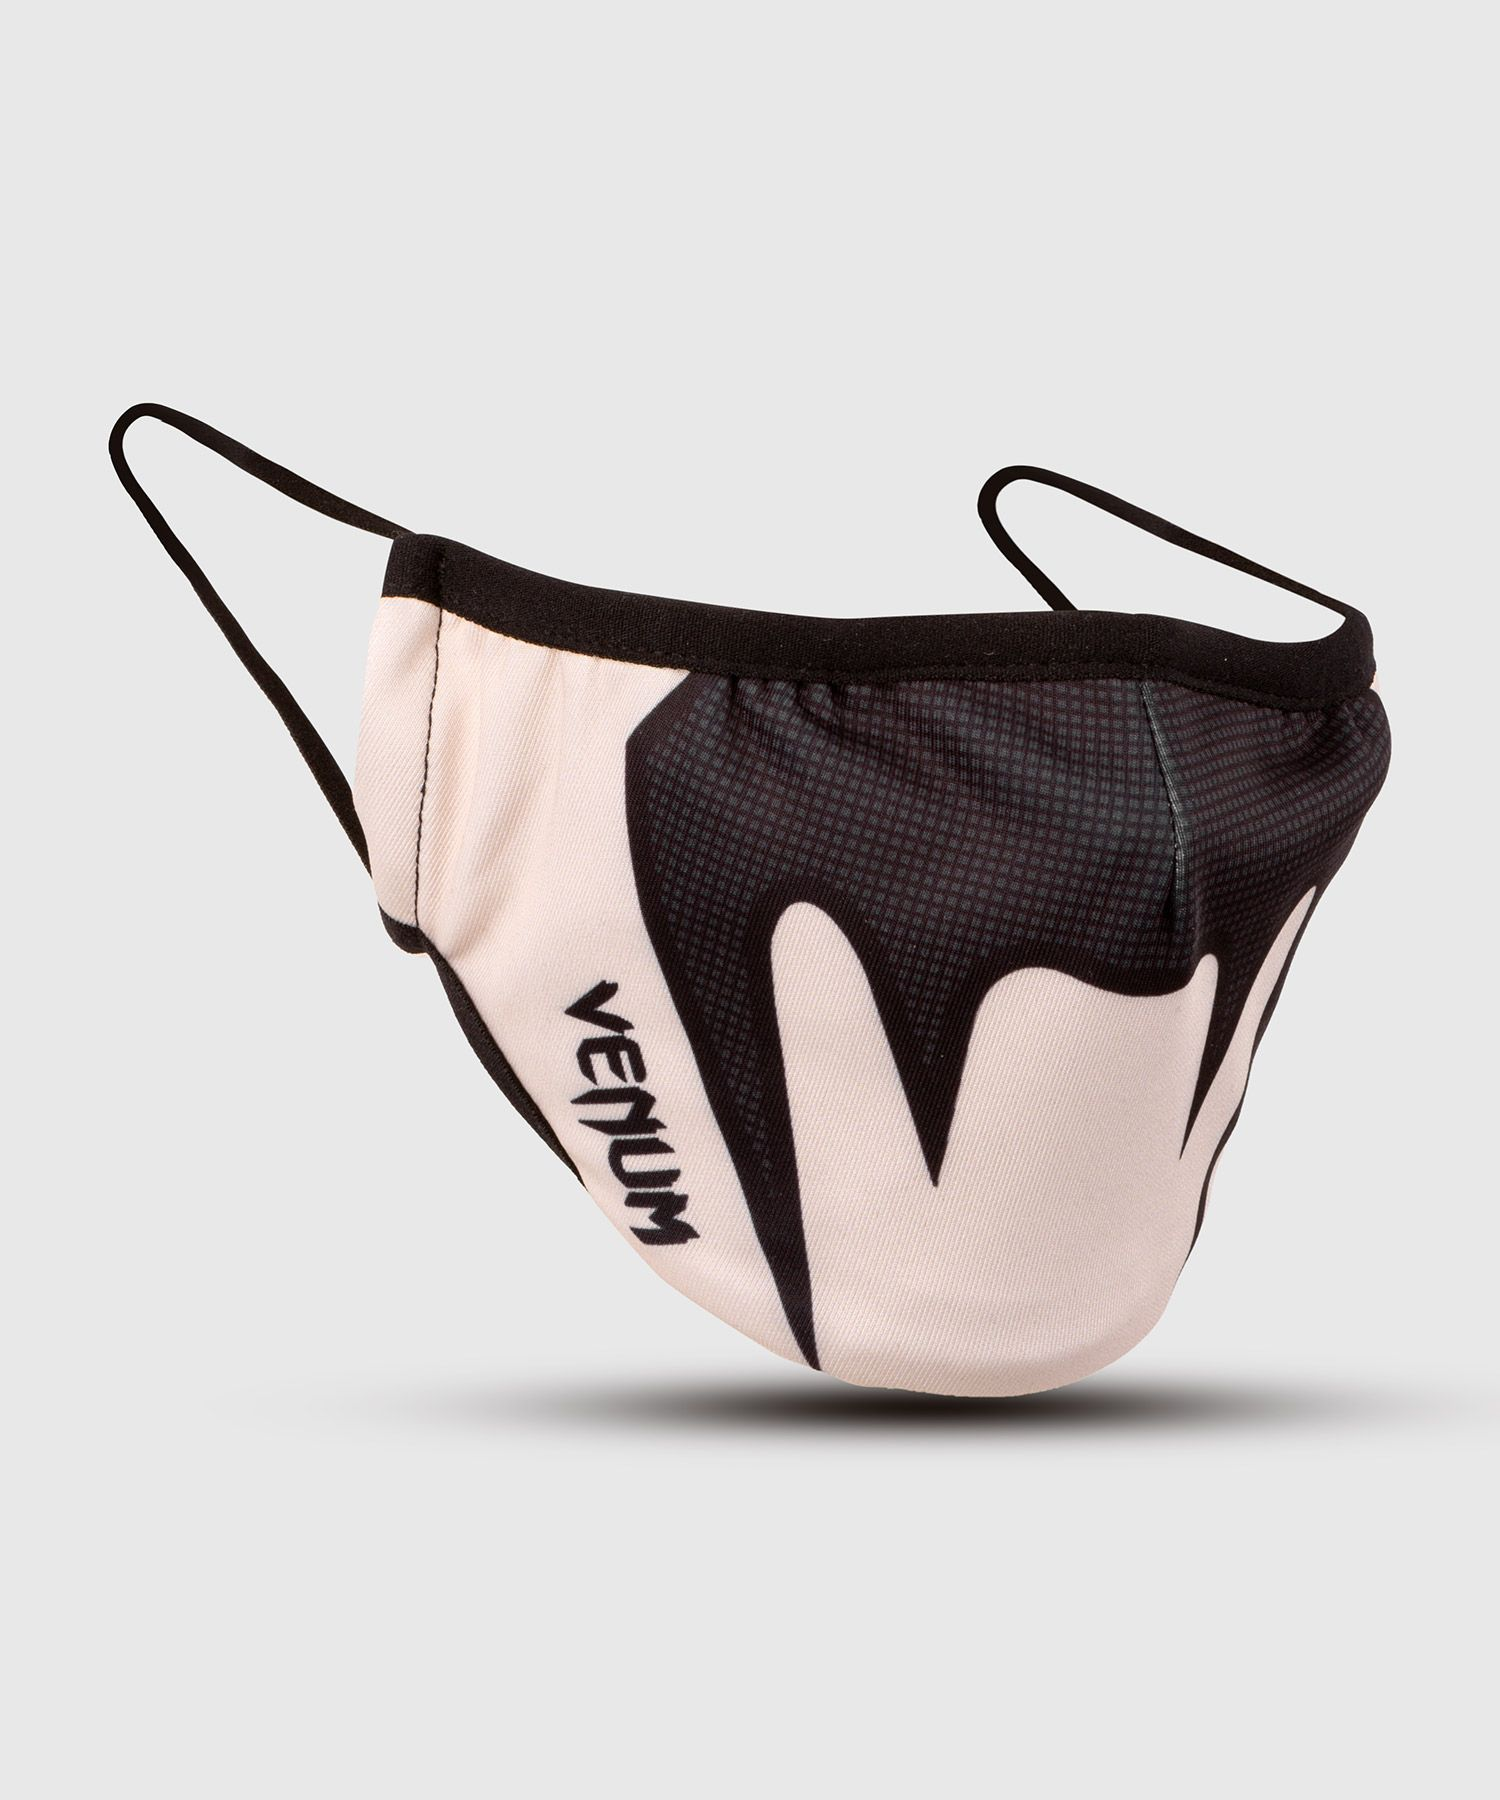 VENUM FACE MASK - SAND/BLACK